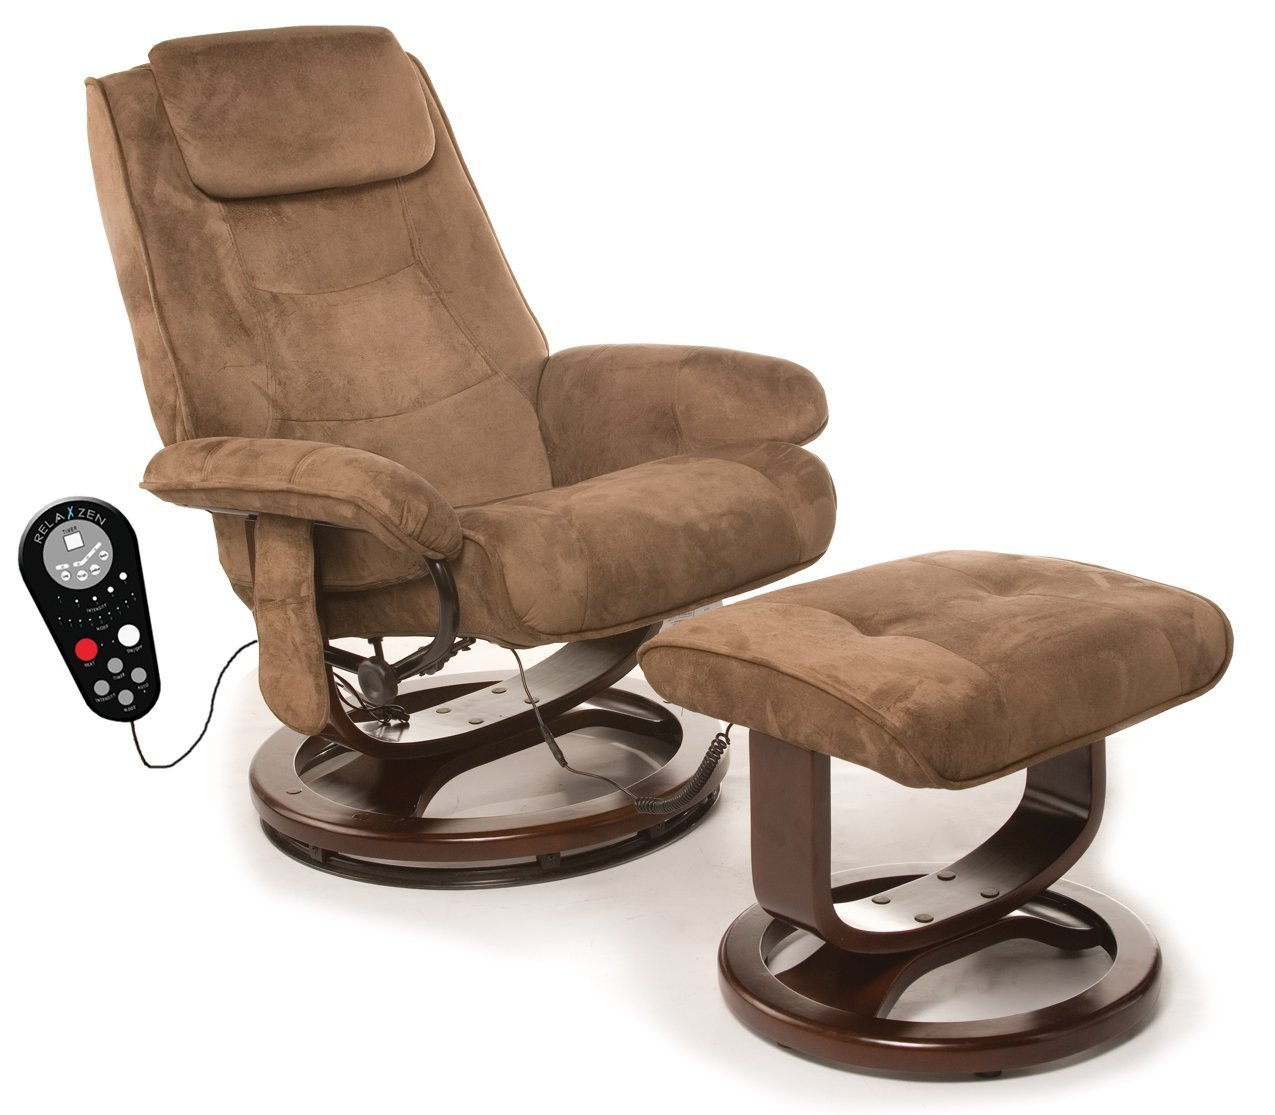 Amazon.com Relaxzen 60-078011 Deluxe Leisure Recliner Chair with 8-Motor Massage u0026 Heat Brown Health u0026 Personal Care  sc 1 st  Amazon.com & Amazon.com: Relaxzen 60-078011 Deluxe Leisure Recliner Chair with ... islam-shia.org